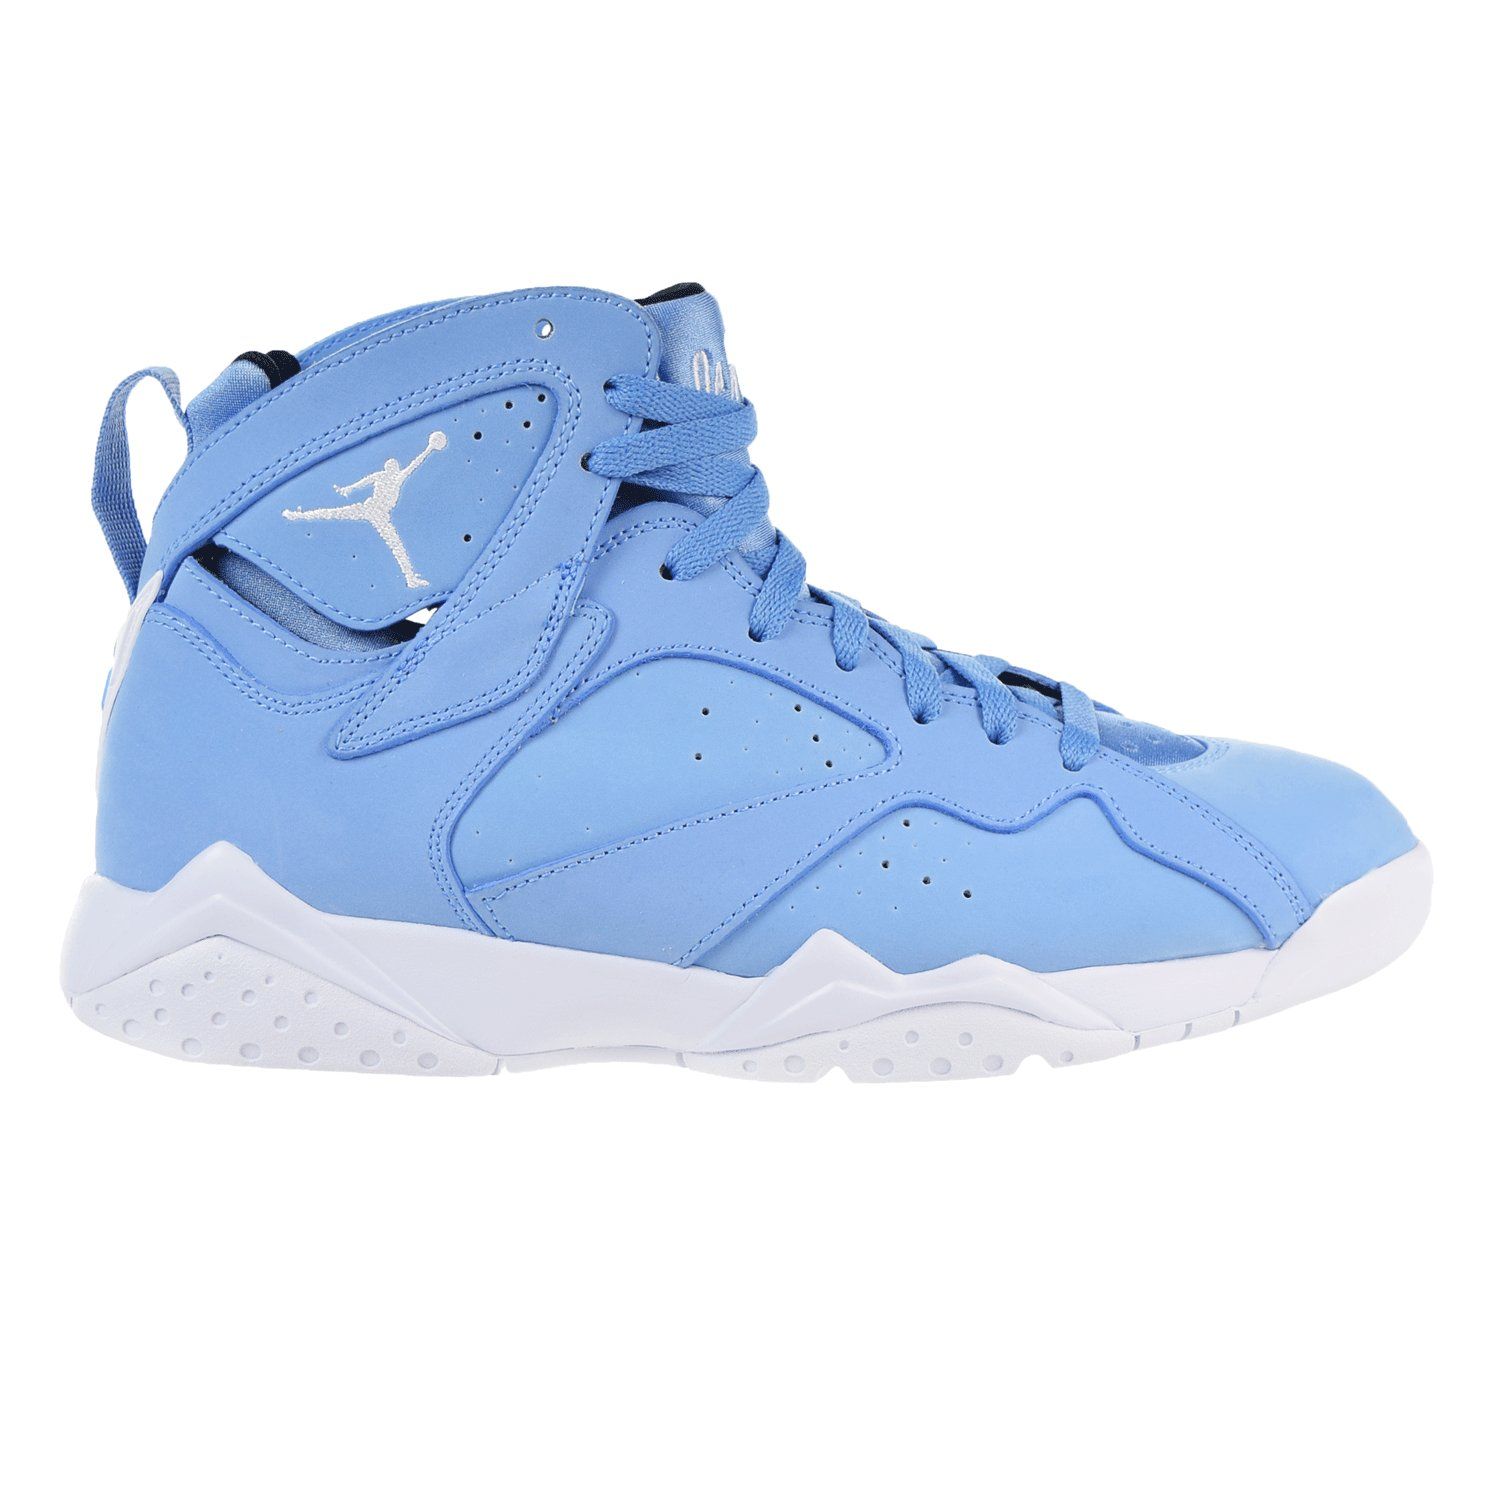 "Air Jordan 7 Retro ""Pantone"" Men's Shoes University Blue/White/Black 304775-400"